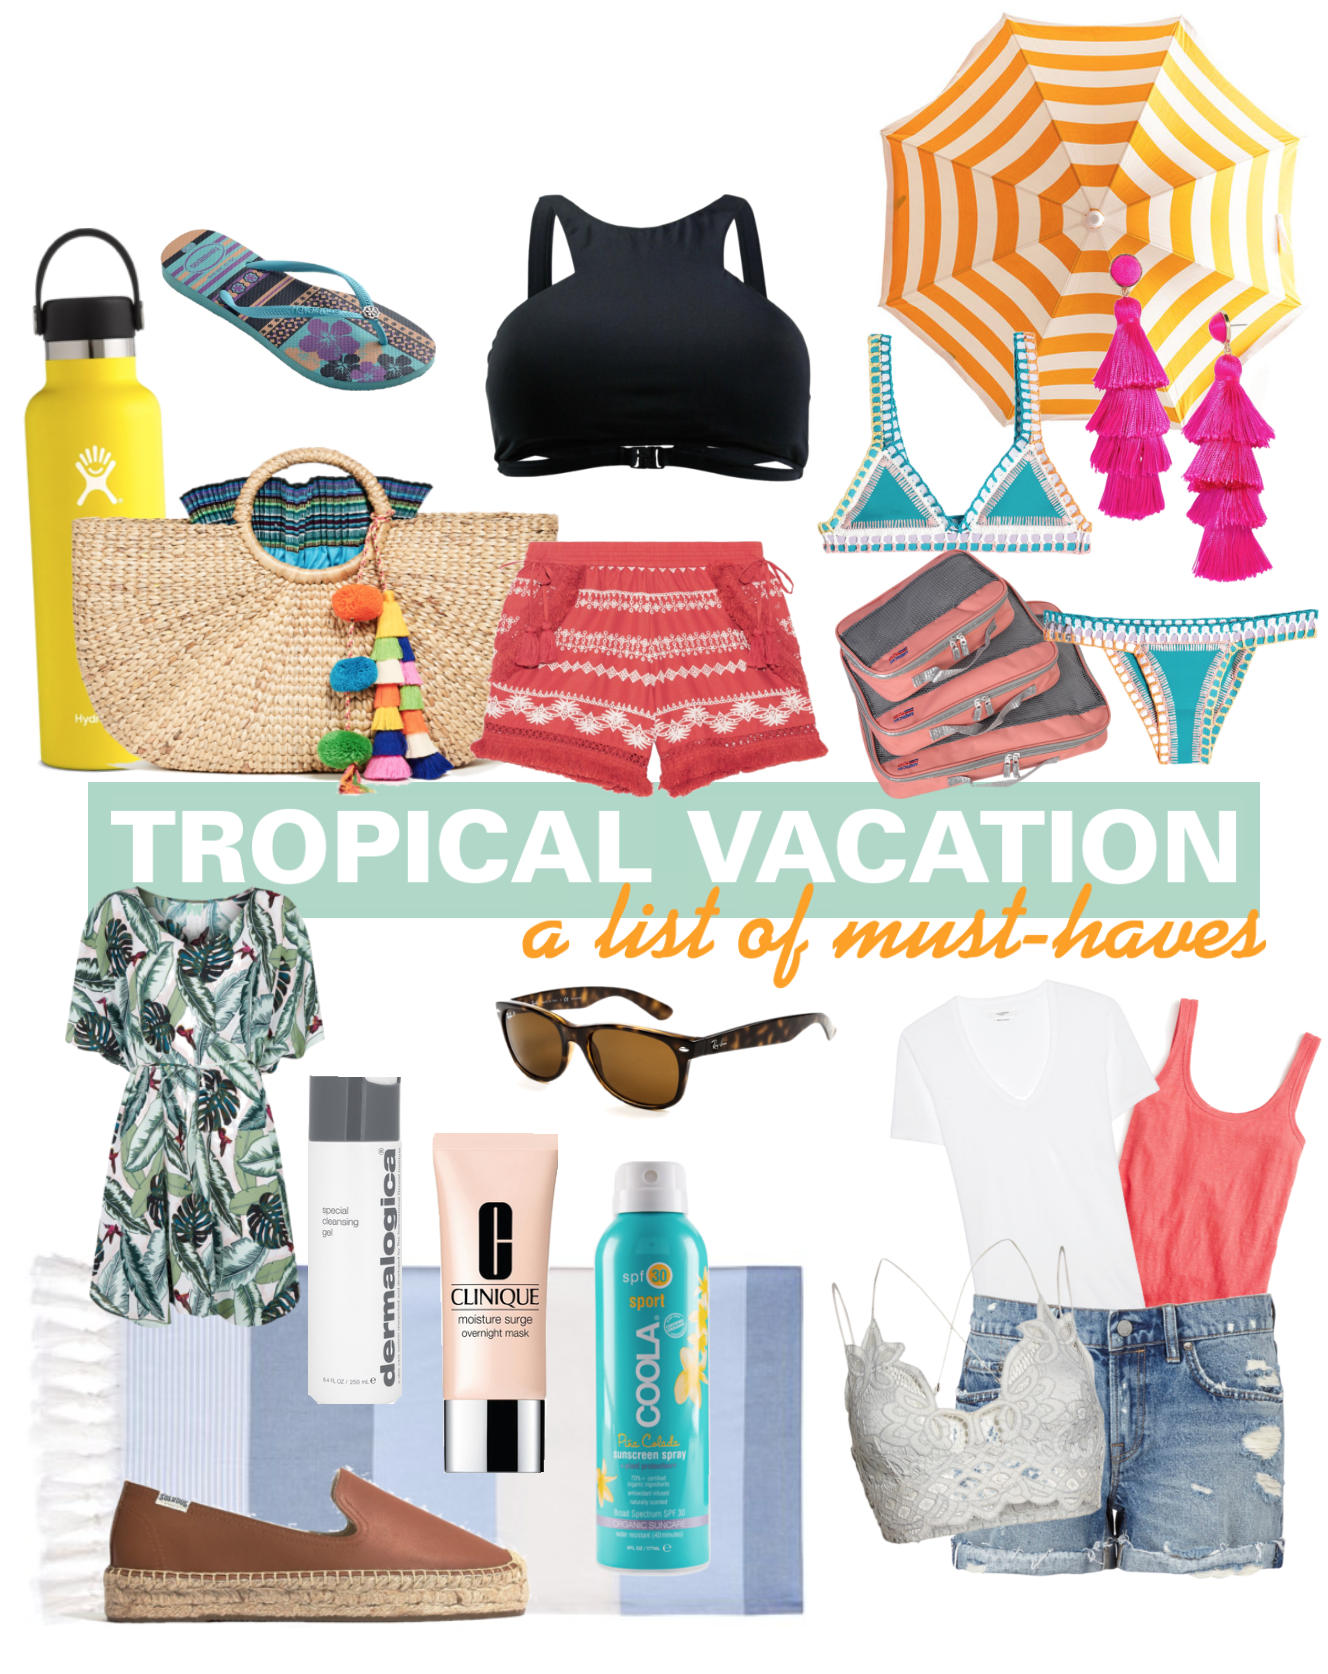 Tropical Vacation Must Haves - What To Pack For Hawaii - Packing List For Beach Trip - What To Pack For Caribbean - What To Pack For Vacation - What To Wear Hawaii - Communikait by Kait Hanson